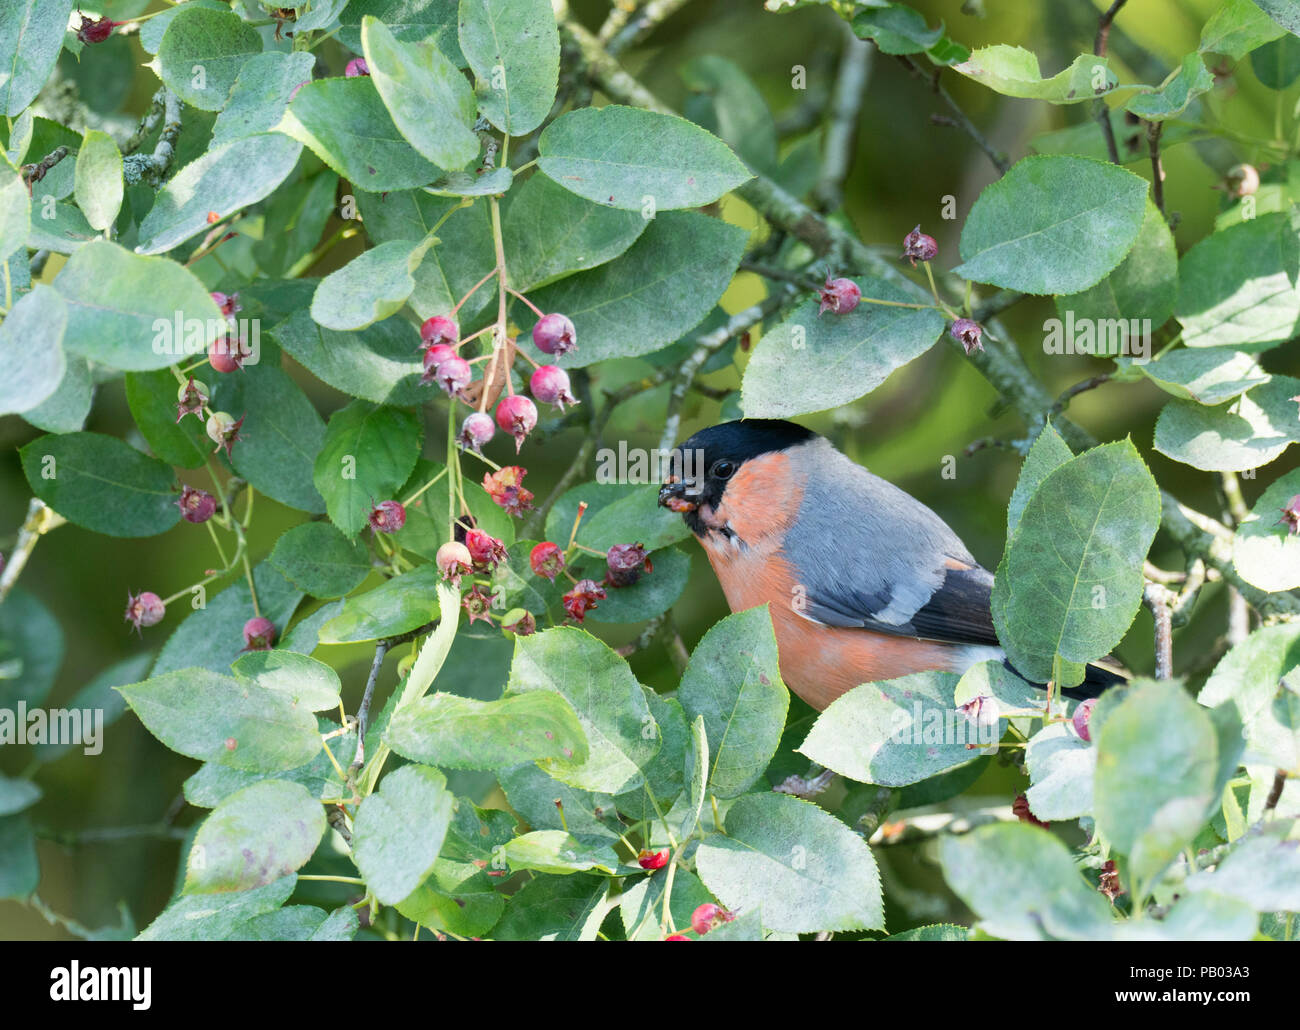 Bullfinch, Pyrrhula pyrrhula, single adult male feeding on fruits of Amelanchier canadensis. Worcestershire, UK. - Stock Image